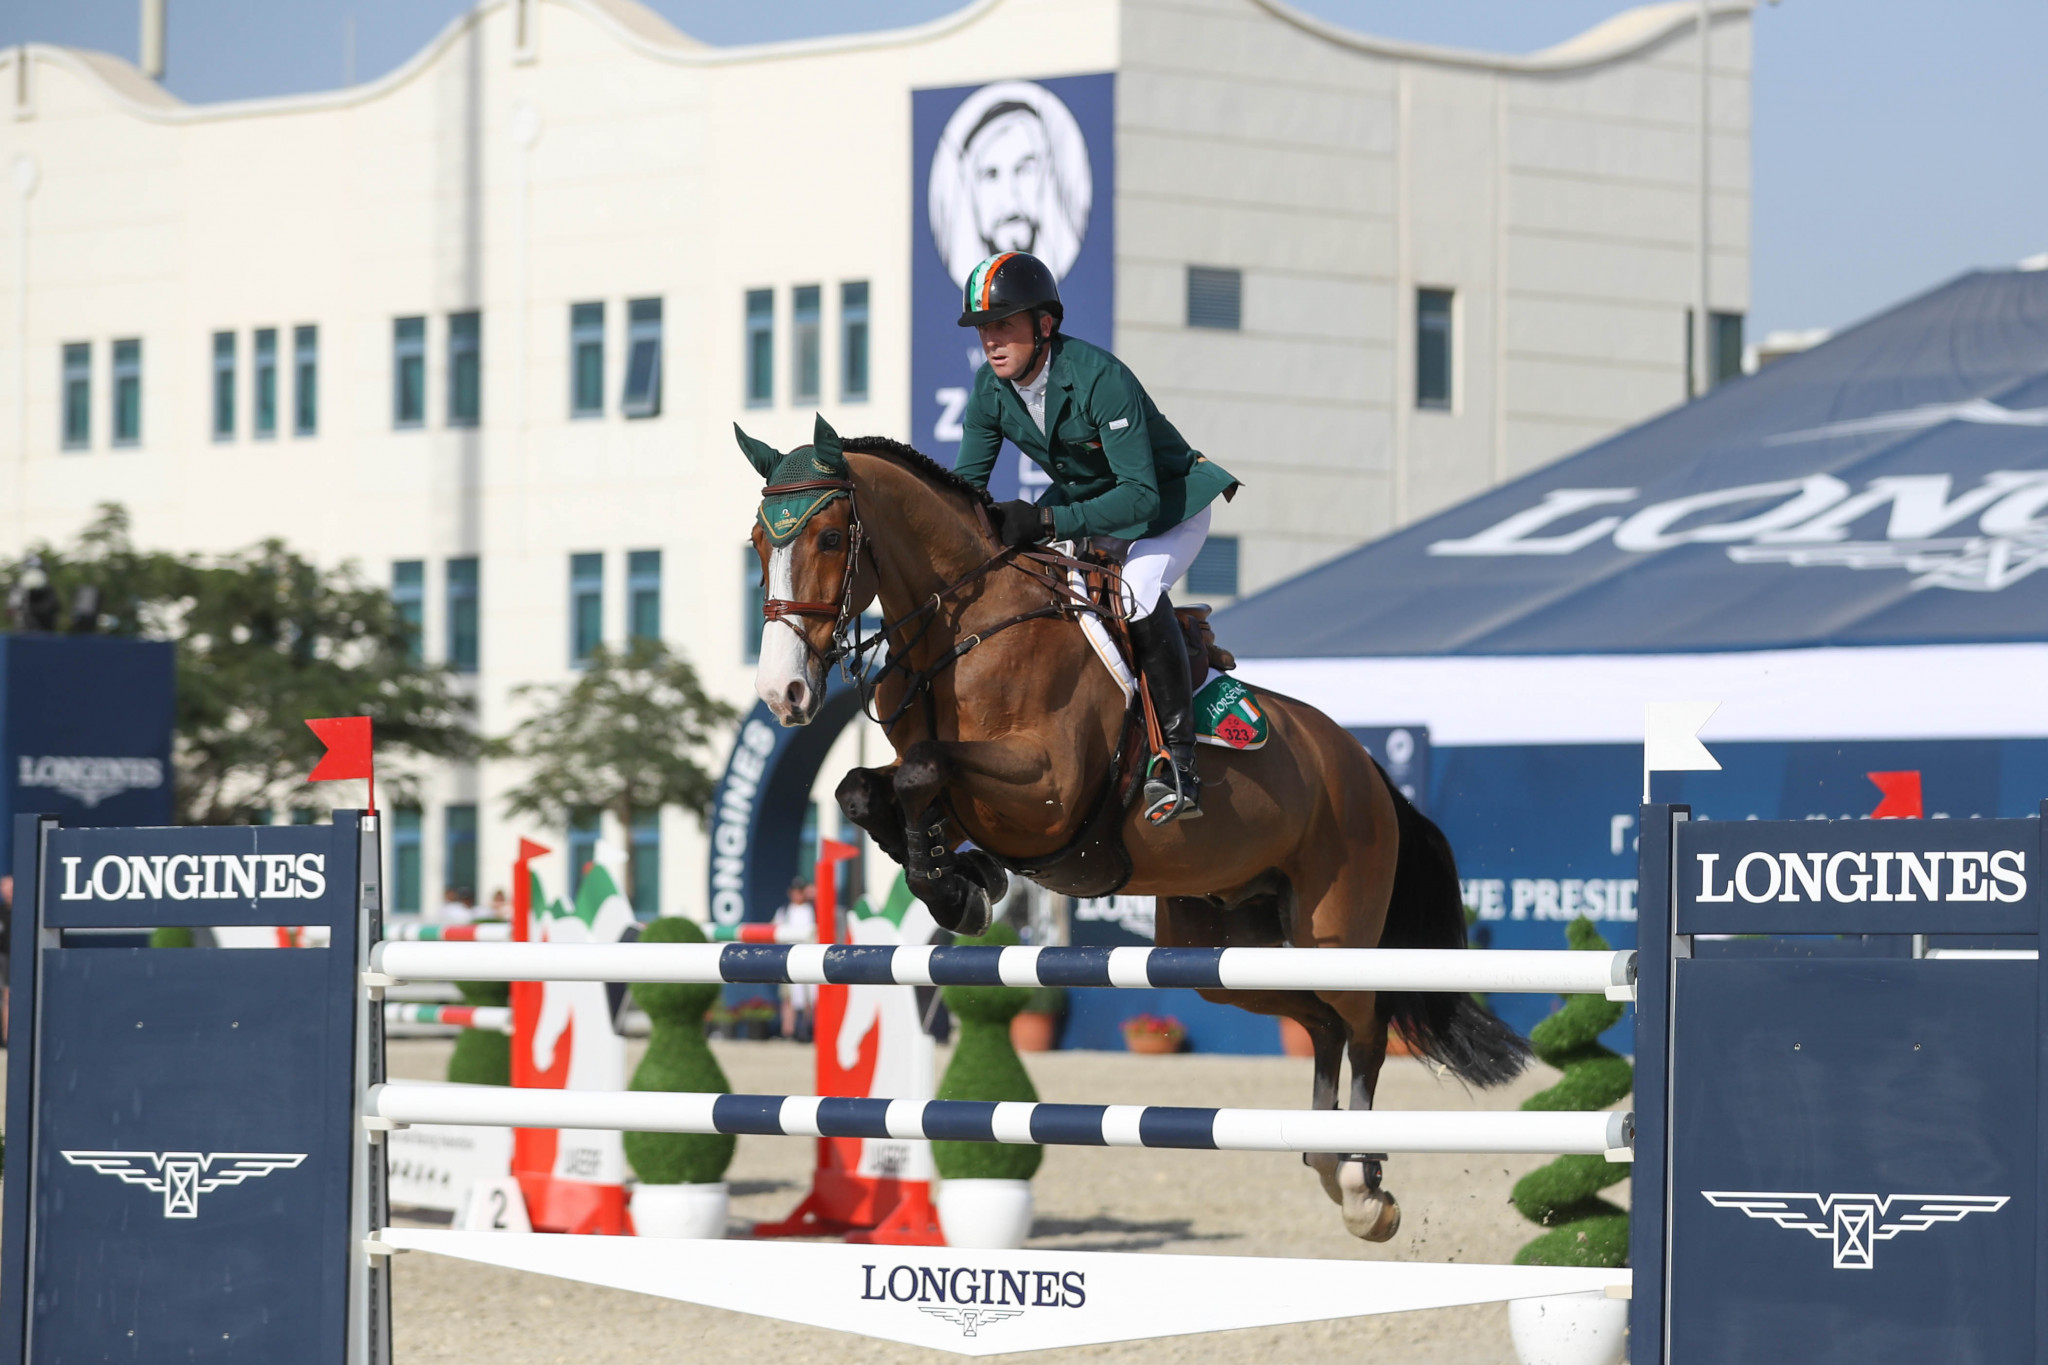 Ireland's Breen takes victory at Longines Global Champions Tour in Monaco